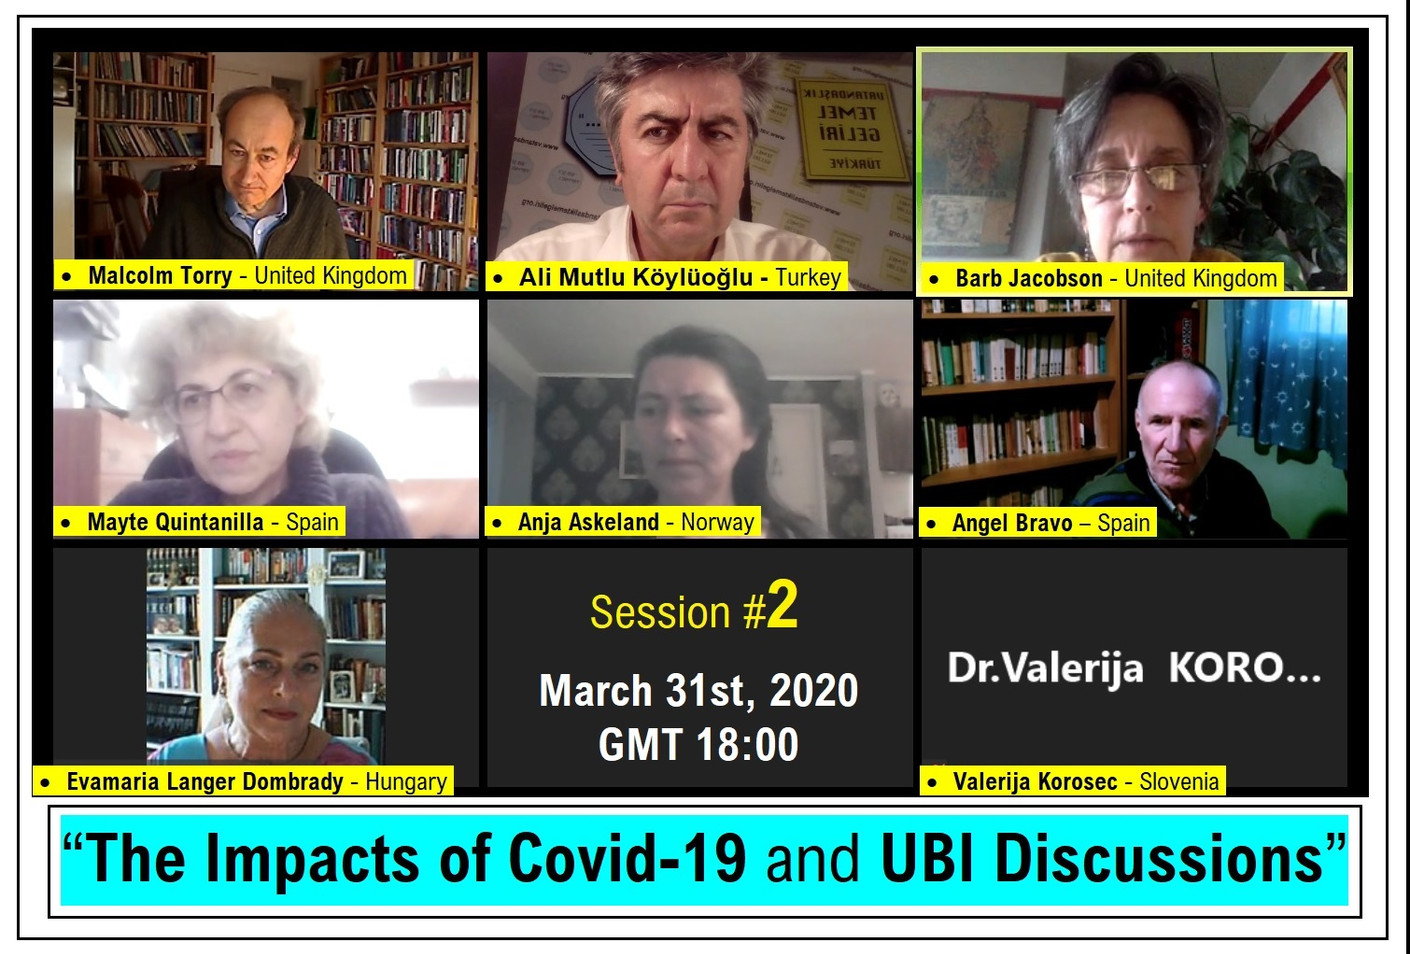 Impacts of Covid 19 and UBI Discussions - Session #2 - March 31st, 2020